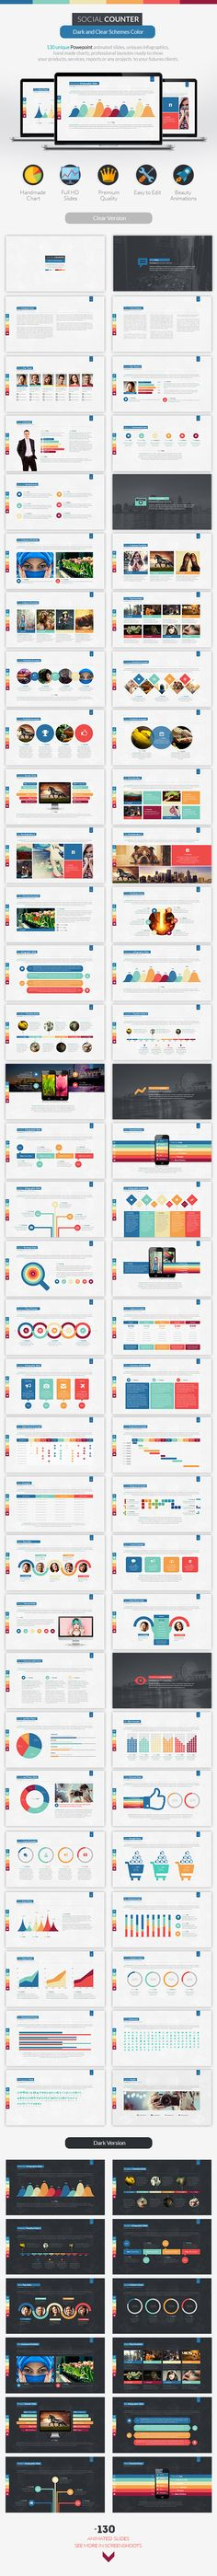 Social Counter | Powerpoint Presentation Template #design #slides Download: http://graphicriver.net/item/social-counter-powerpoint-presentation/12850713?ref=ksioks